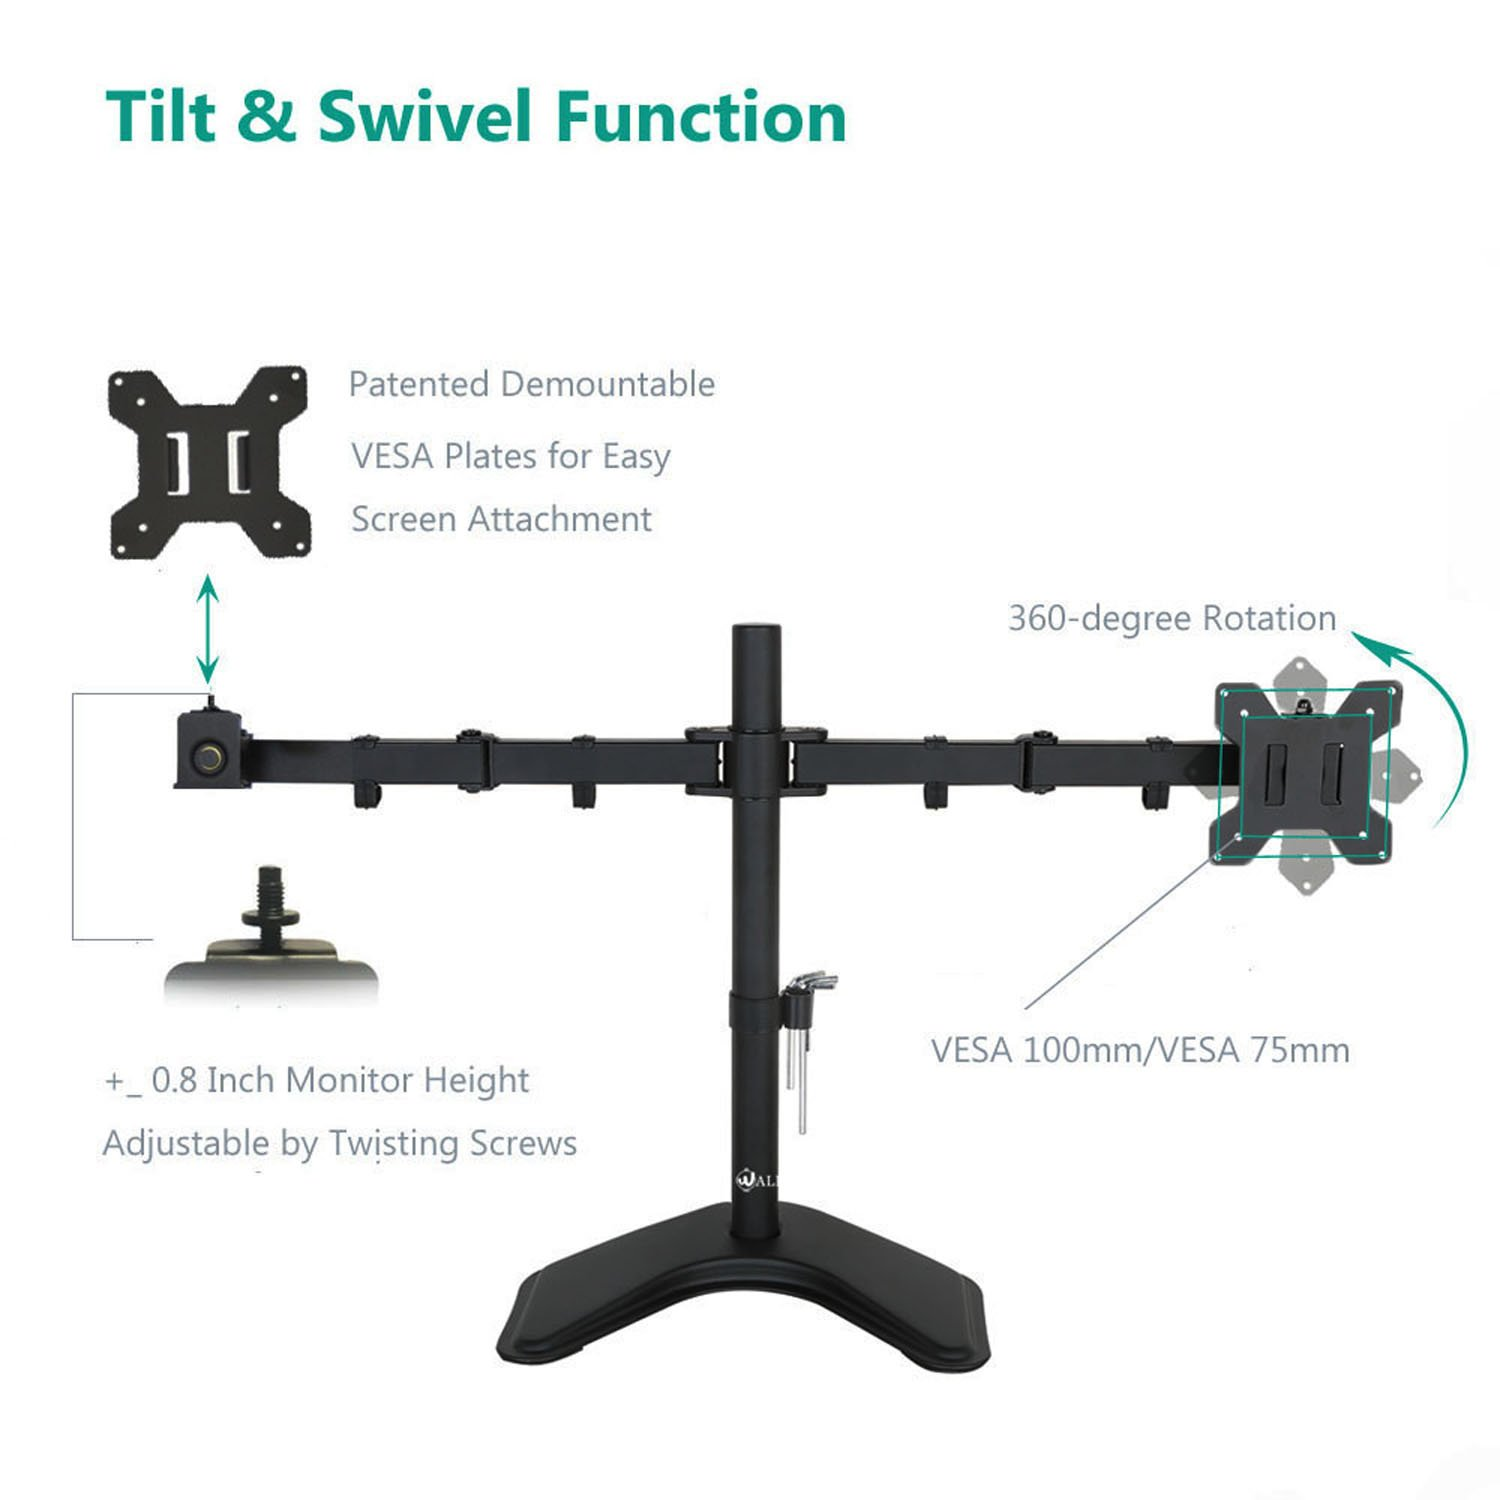 """WALI Free-Standing Dual LCD Monitor Fully Adjustable Desk Mount Fits Two Screens up to 27"""", 22 lbs. Weight Capacity per Arm (MF002), Black by WALI (Image #4)"""